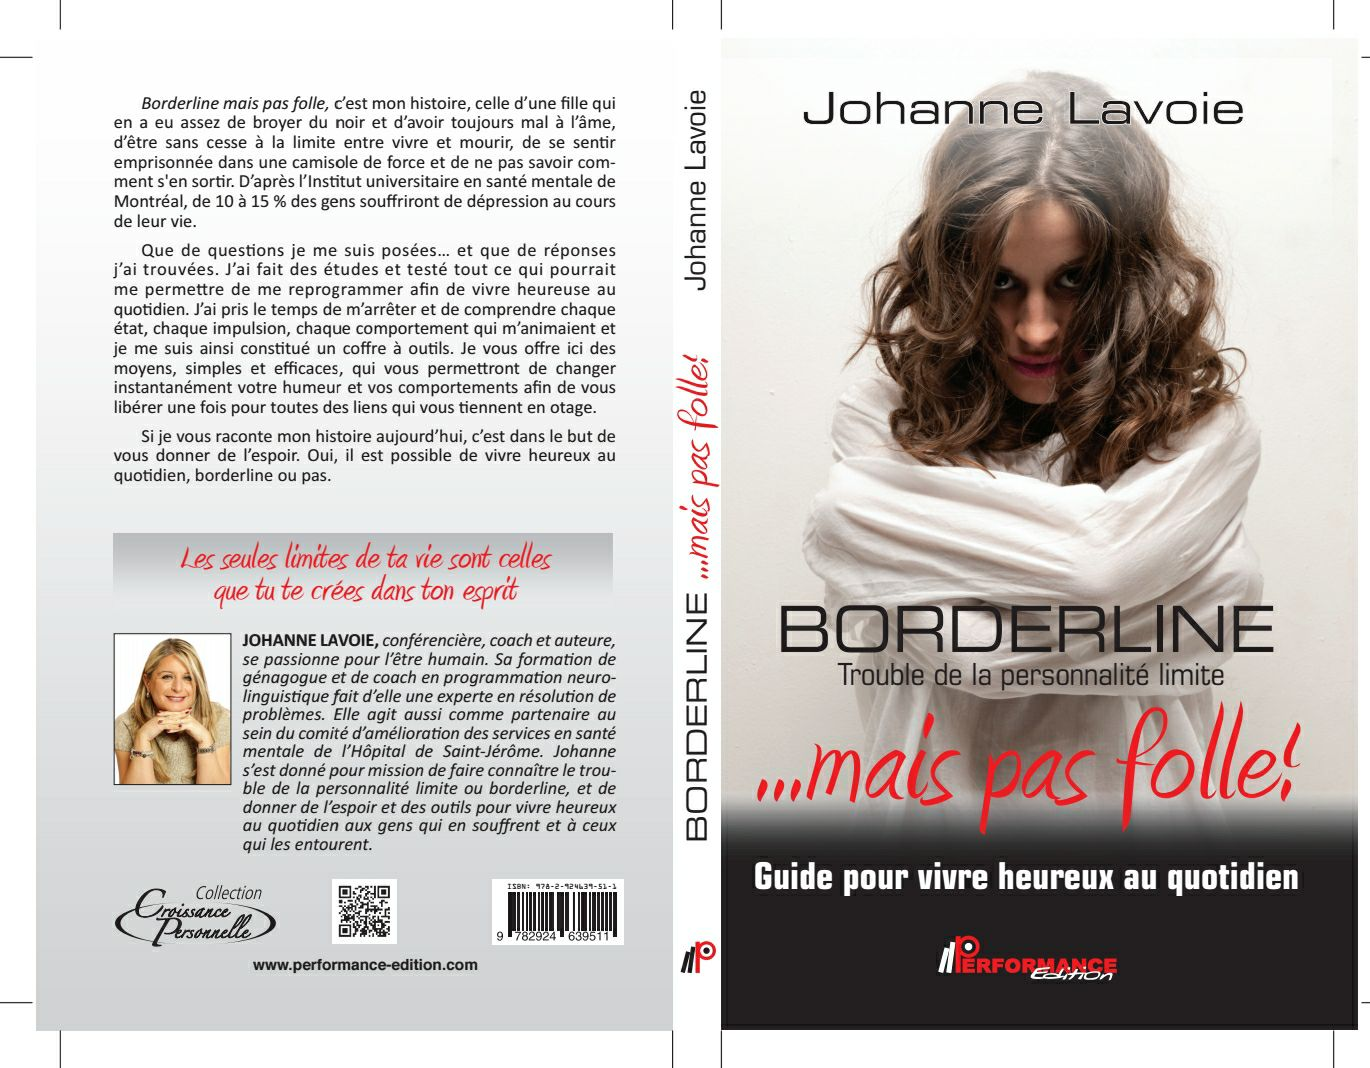 Livre Borderline...Mais pas folle!